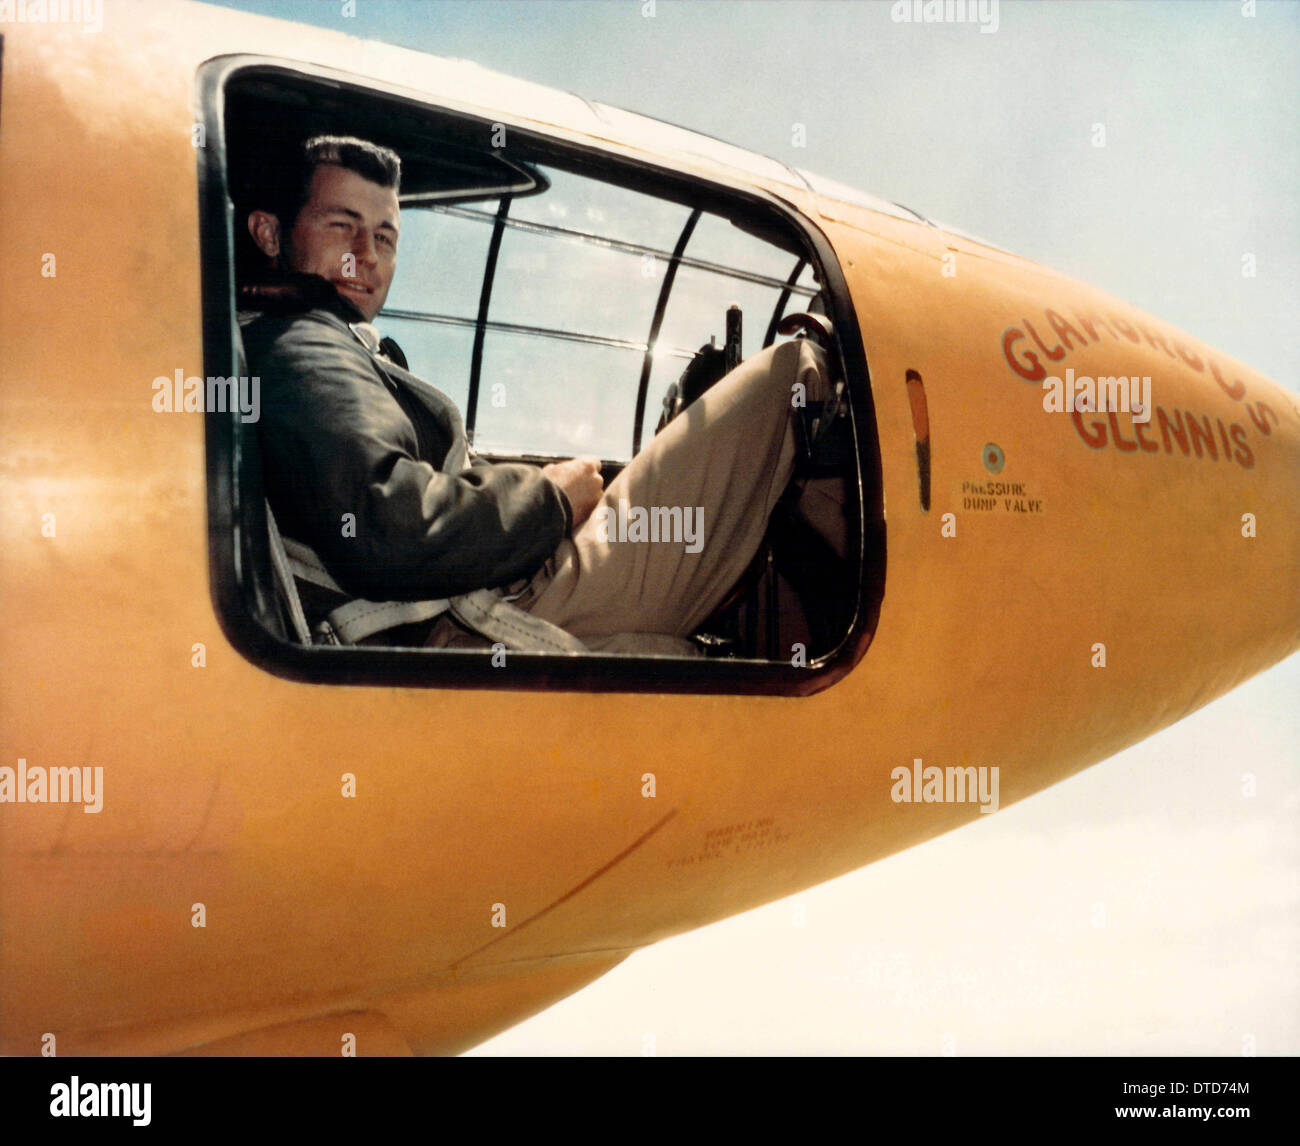 US Air Force test pilot Captain Chuck Yeager sitting in the cockpit of Glamorous Glennis the Bell X-1 aircraft that - Stock Image